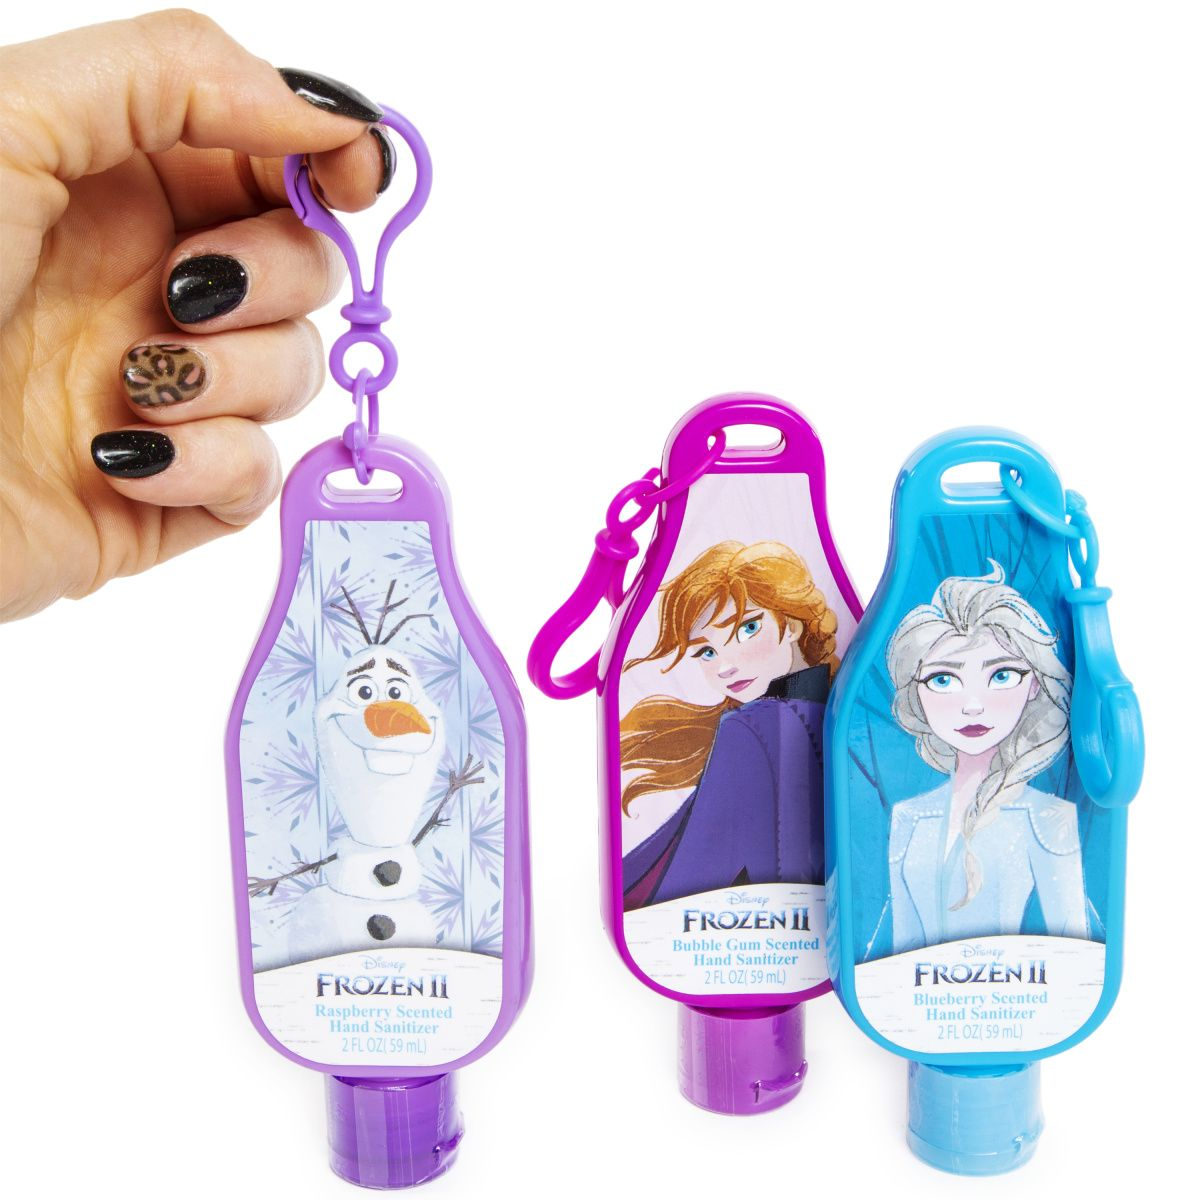 Disney Frozen 2 Travel Hand Sanitizer Hand Sanitizer Disney